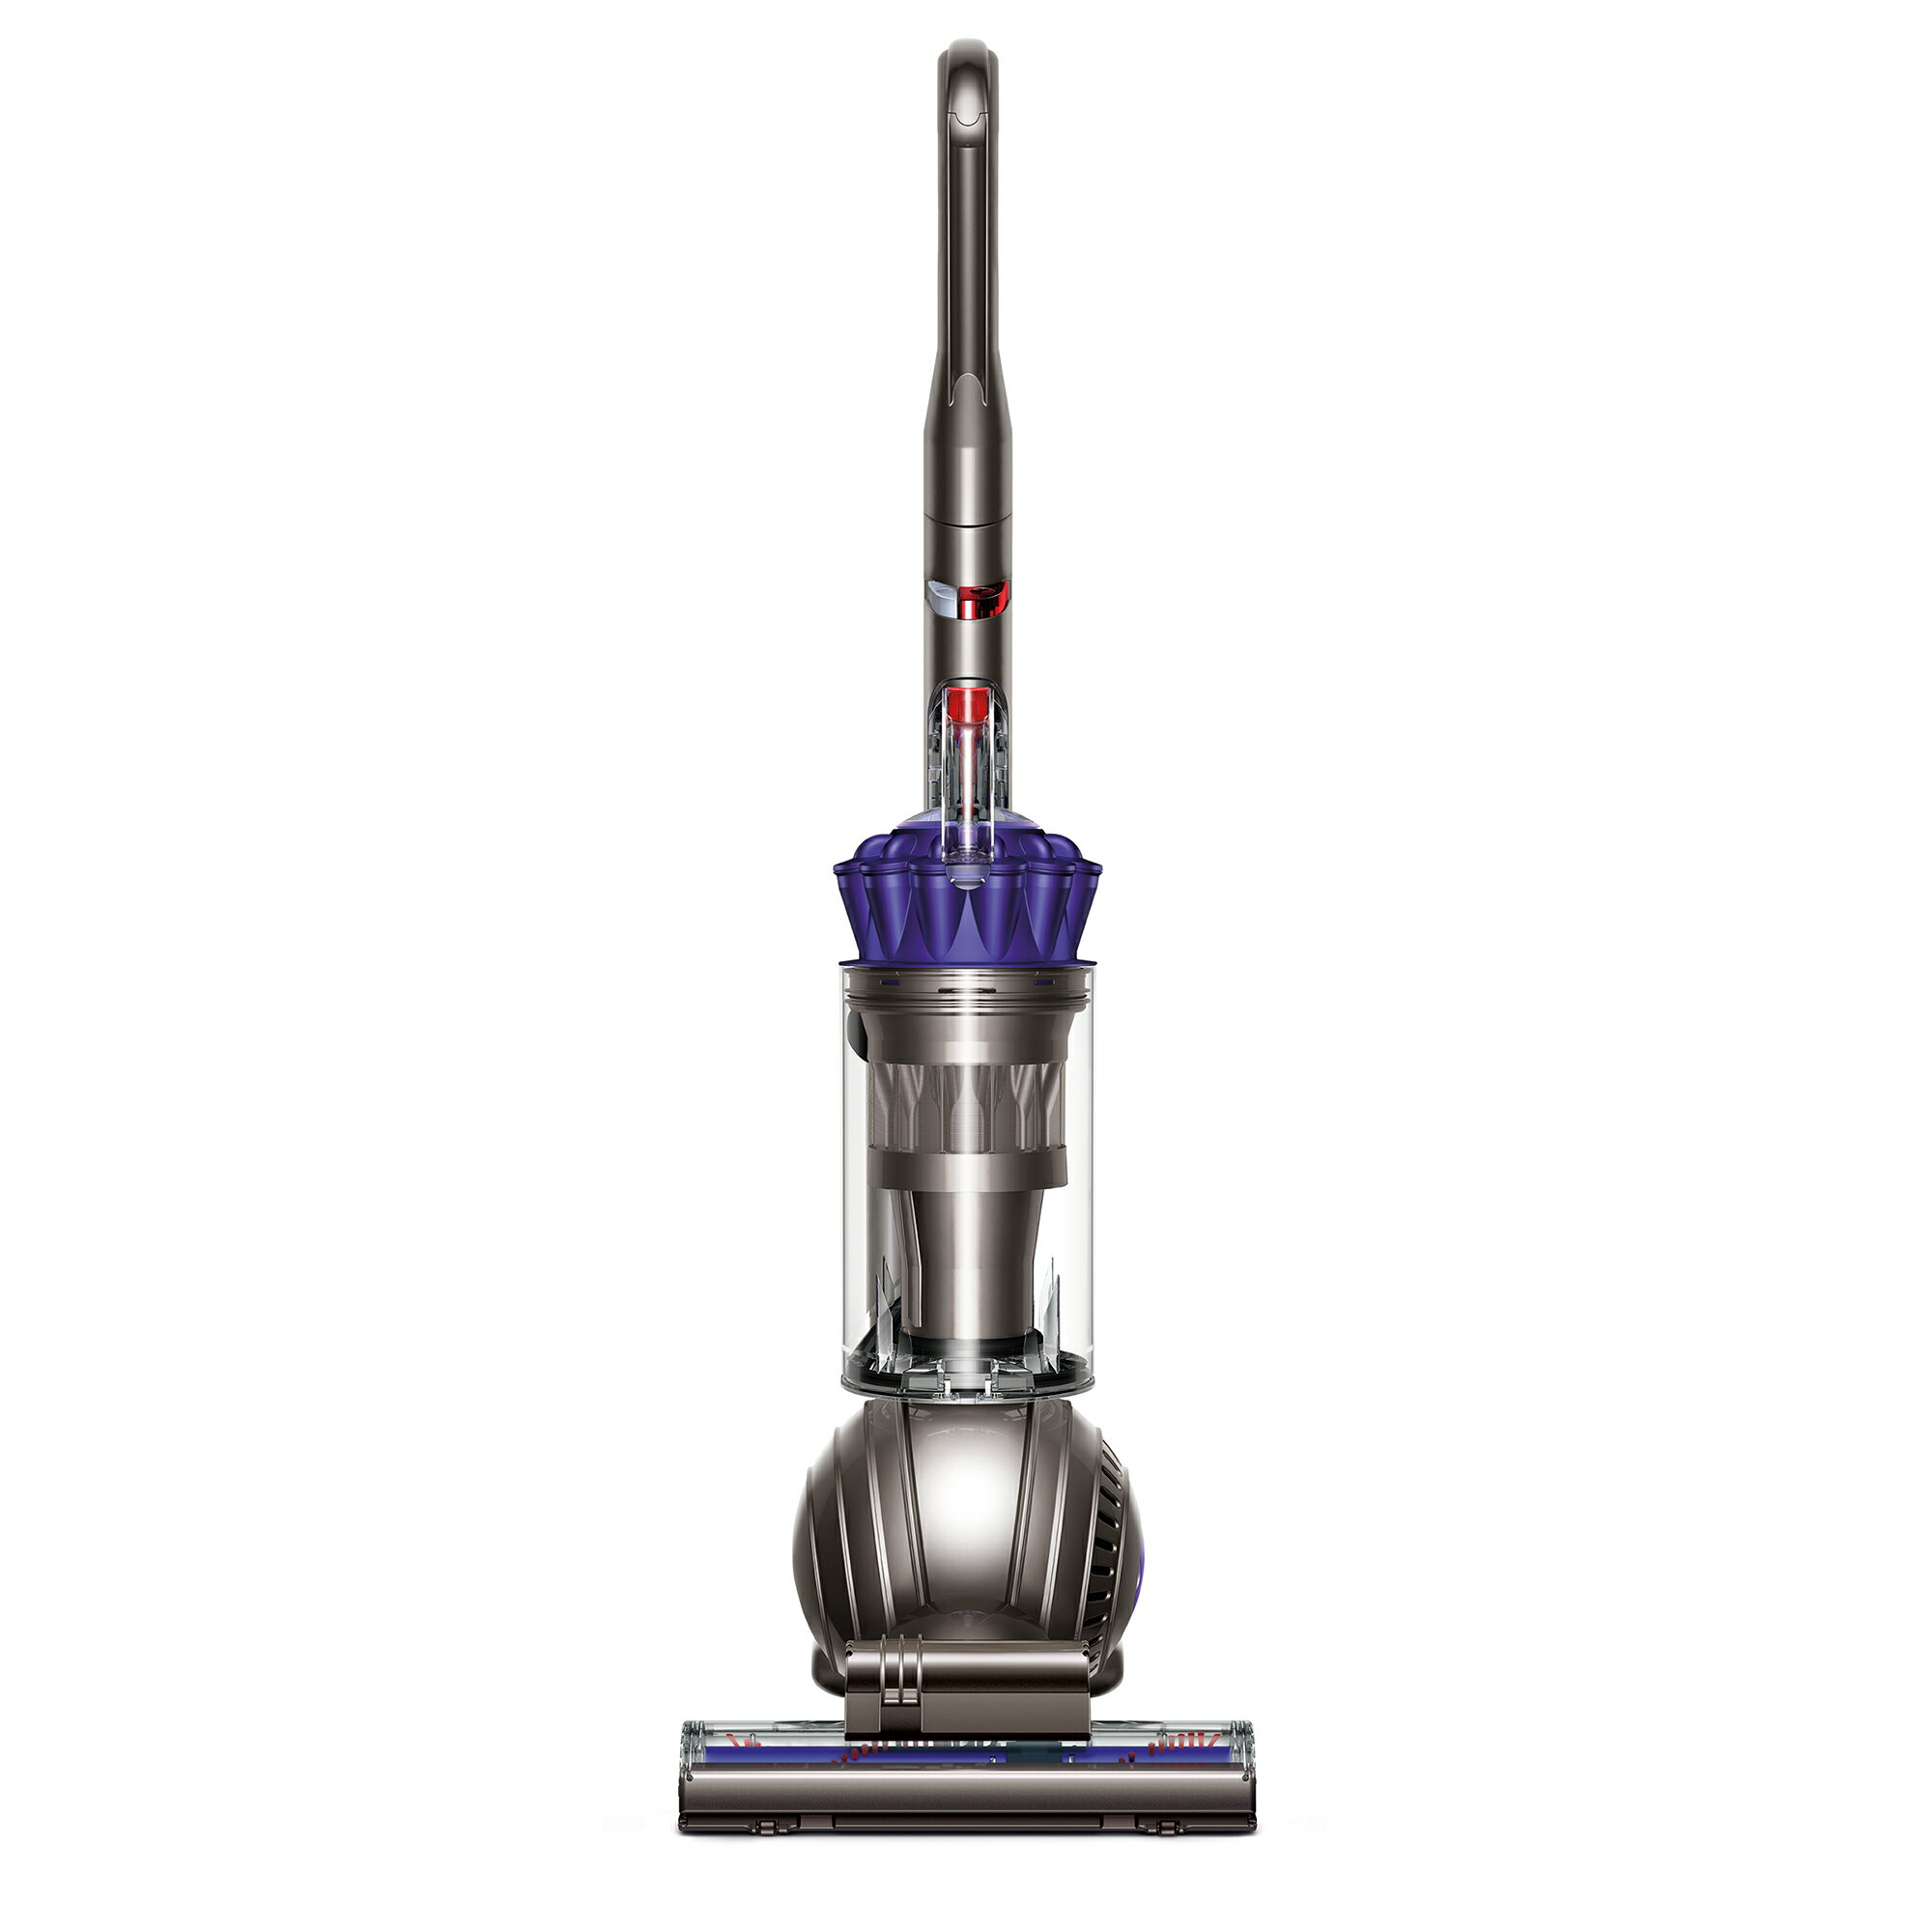 Refurb Dyson Ball Animal + Upright Vacuum + $39.75 Rakuten.com Credit